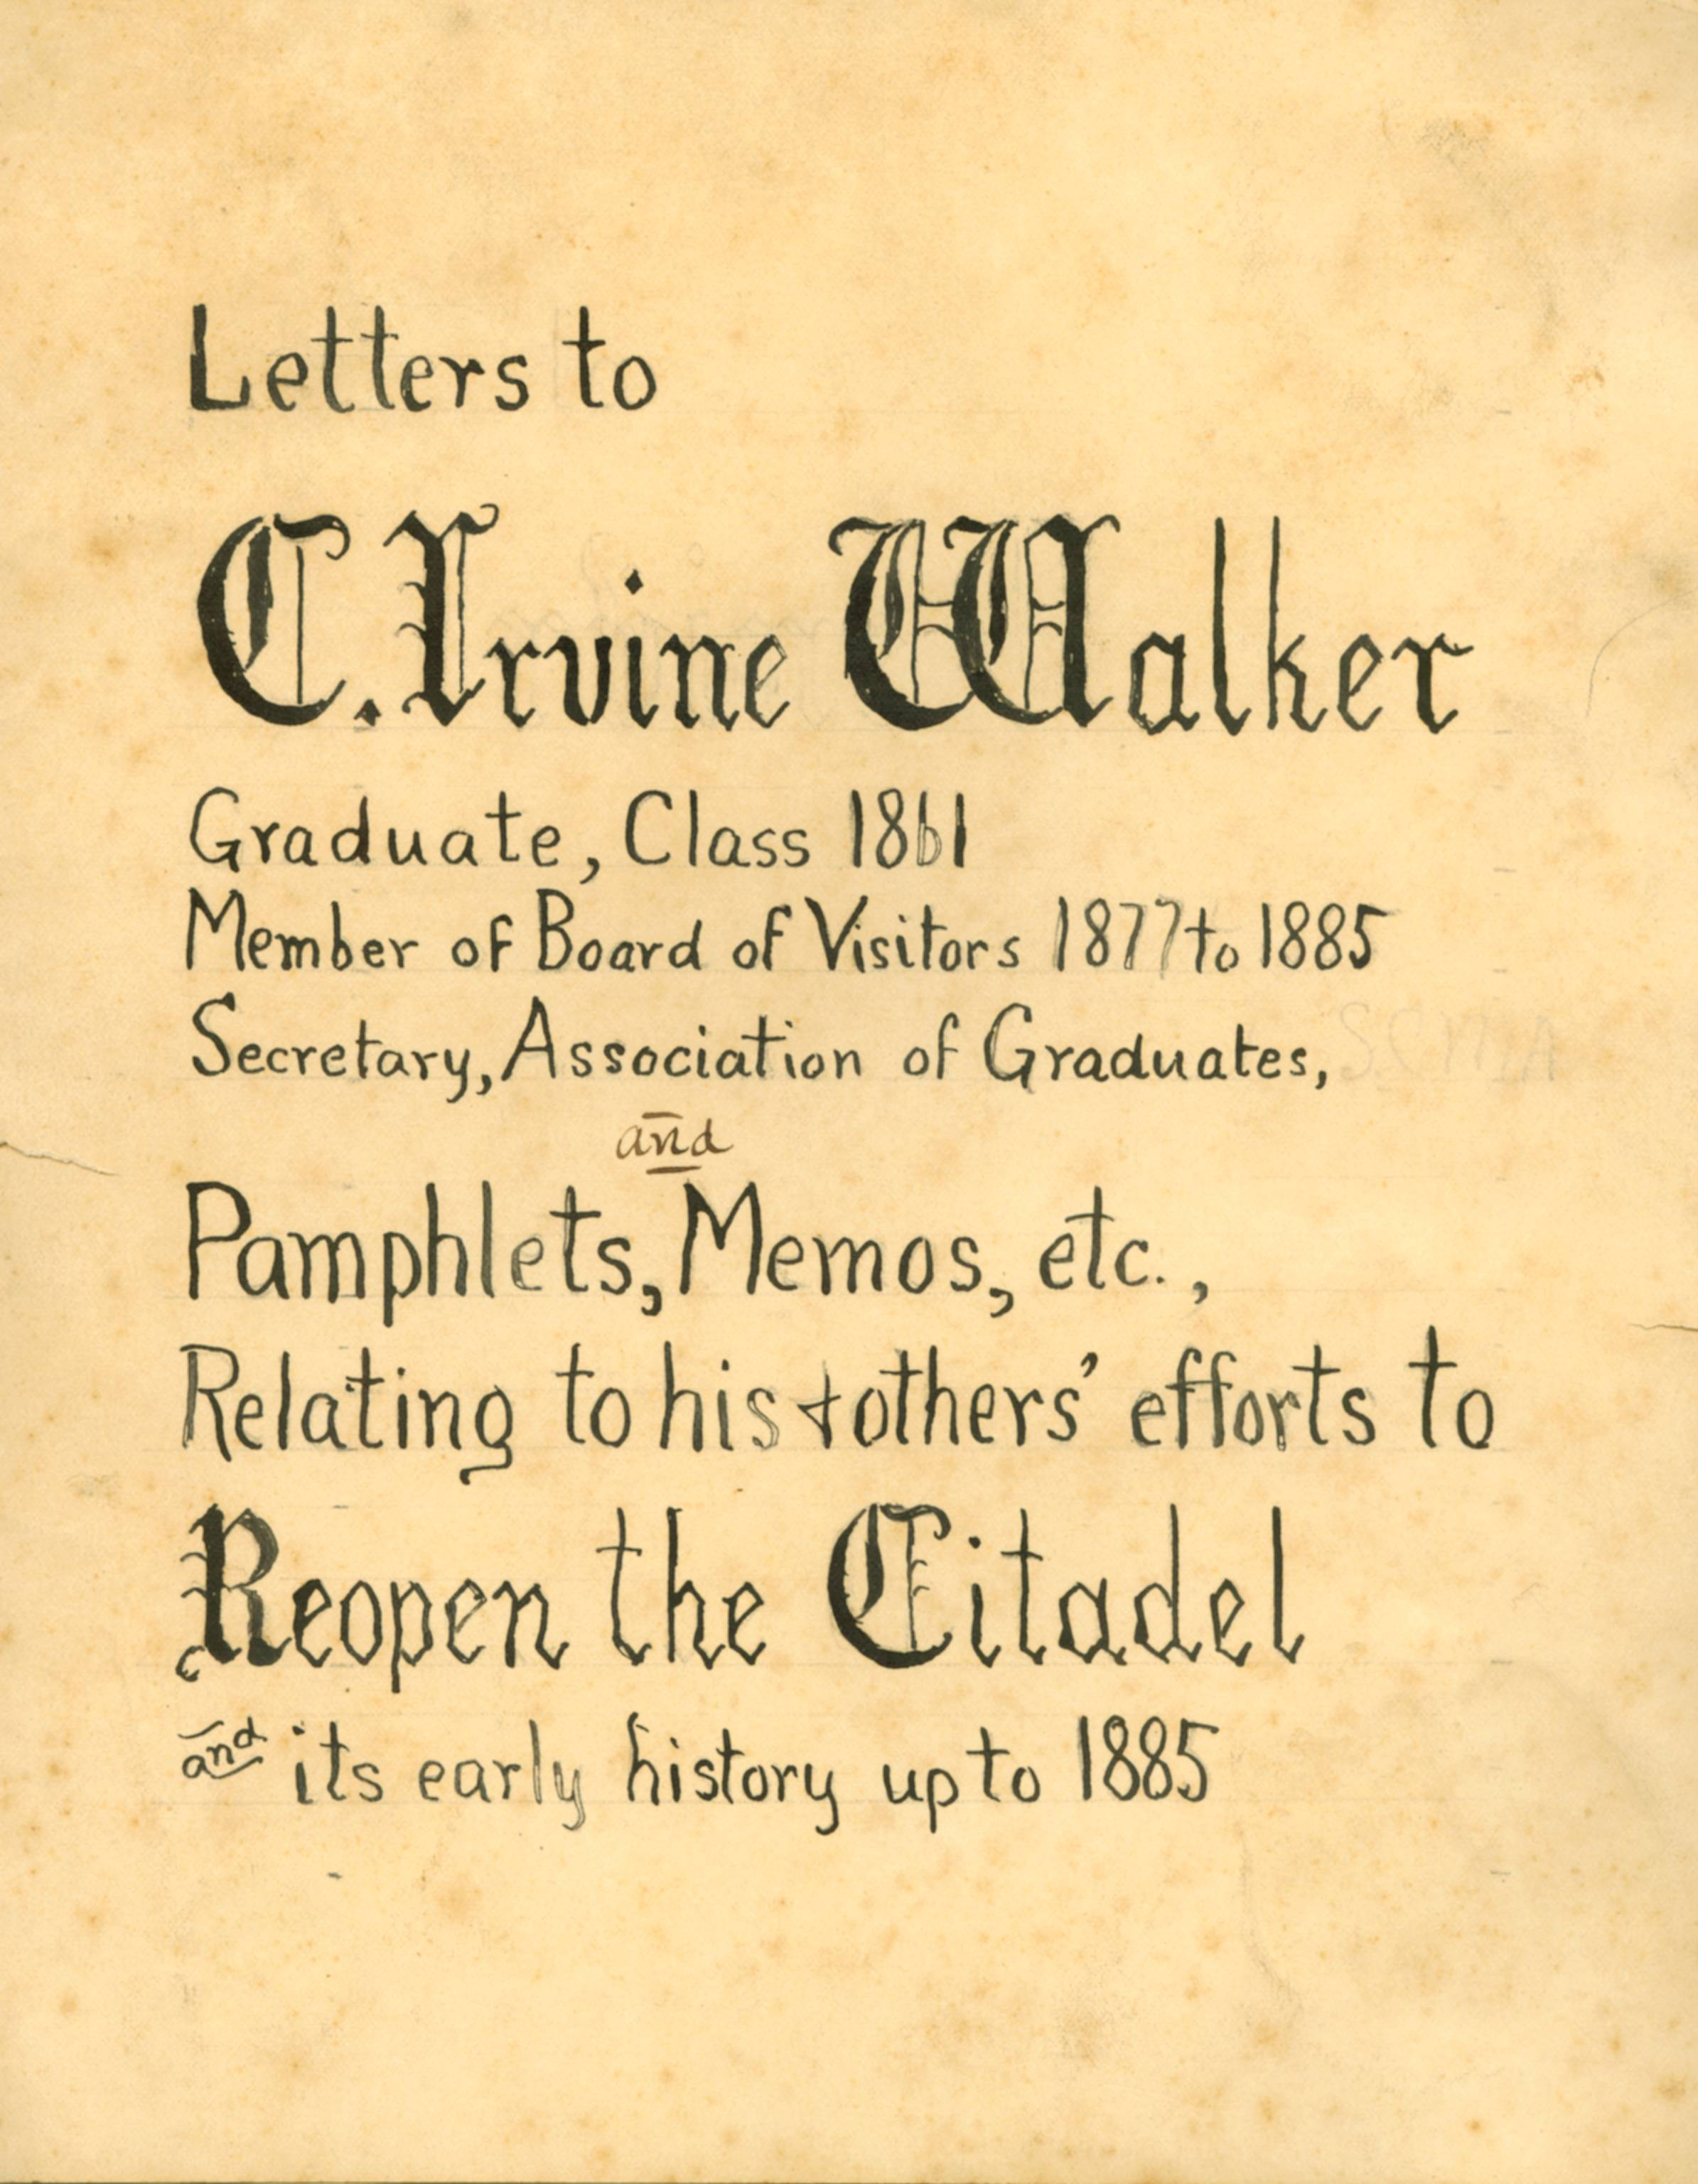 Letters to C. Irvine Walker relating to his and others' efforts to reopen the Citadel and its early history up to 1885